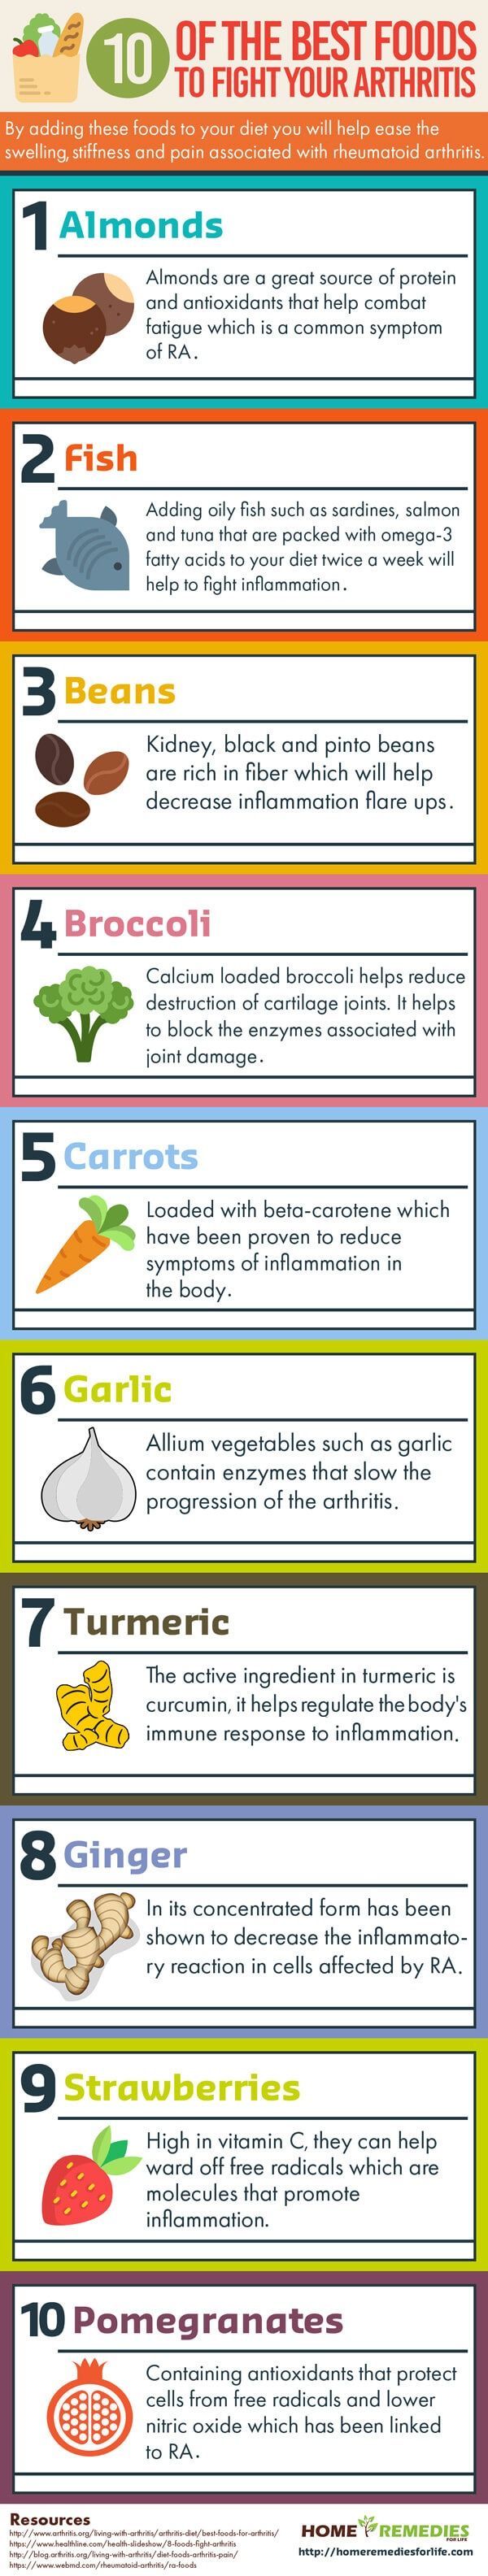 10 of the best foods too fight your arthritis